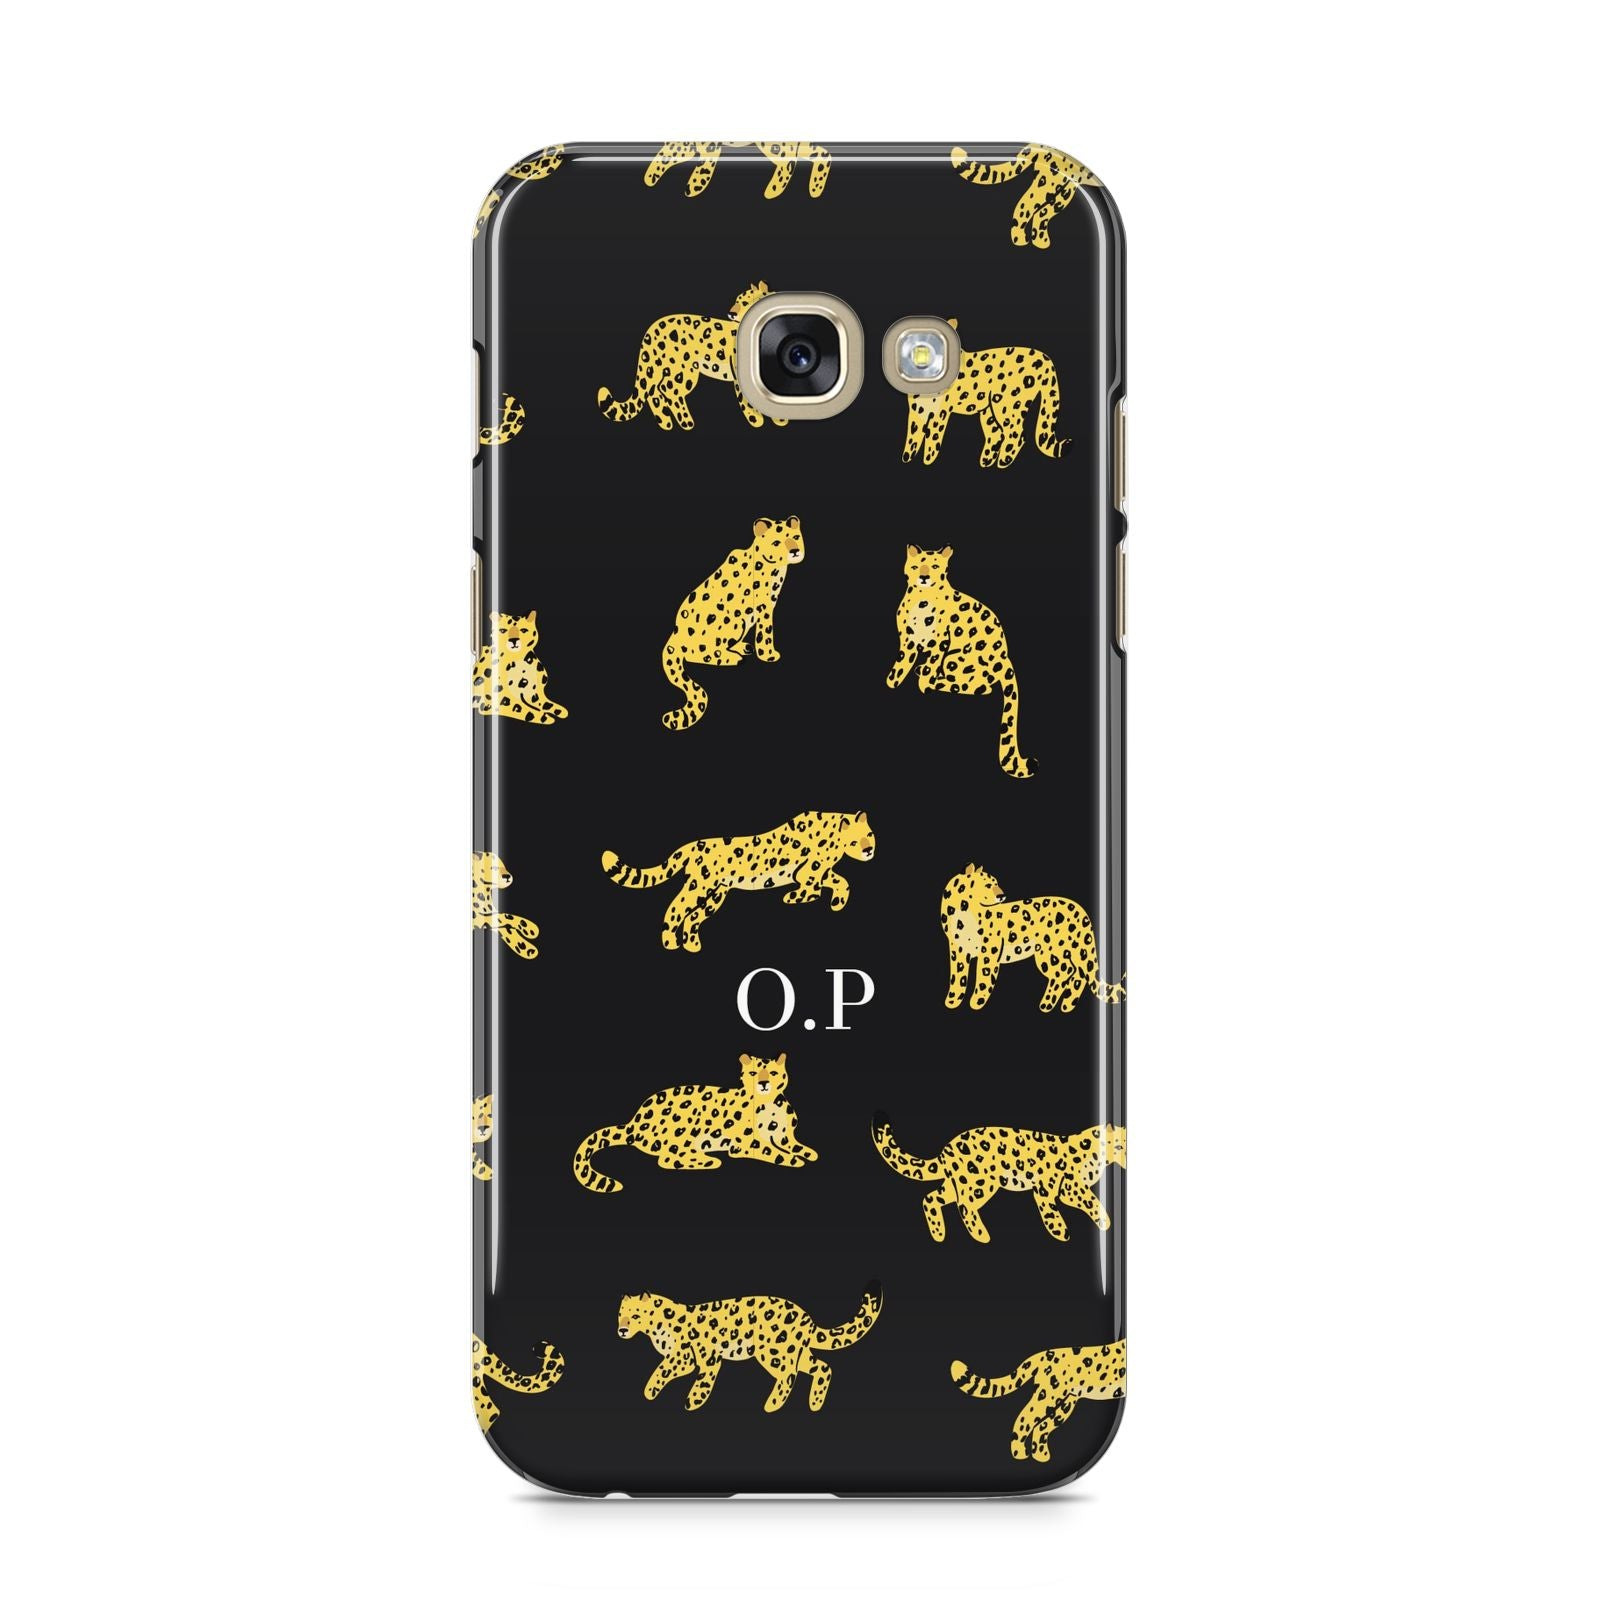 Prowling Leopard Samsung Galaxy A5 2017 Case on gold phone